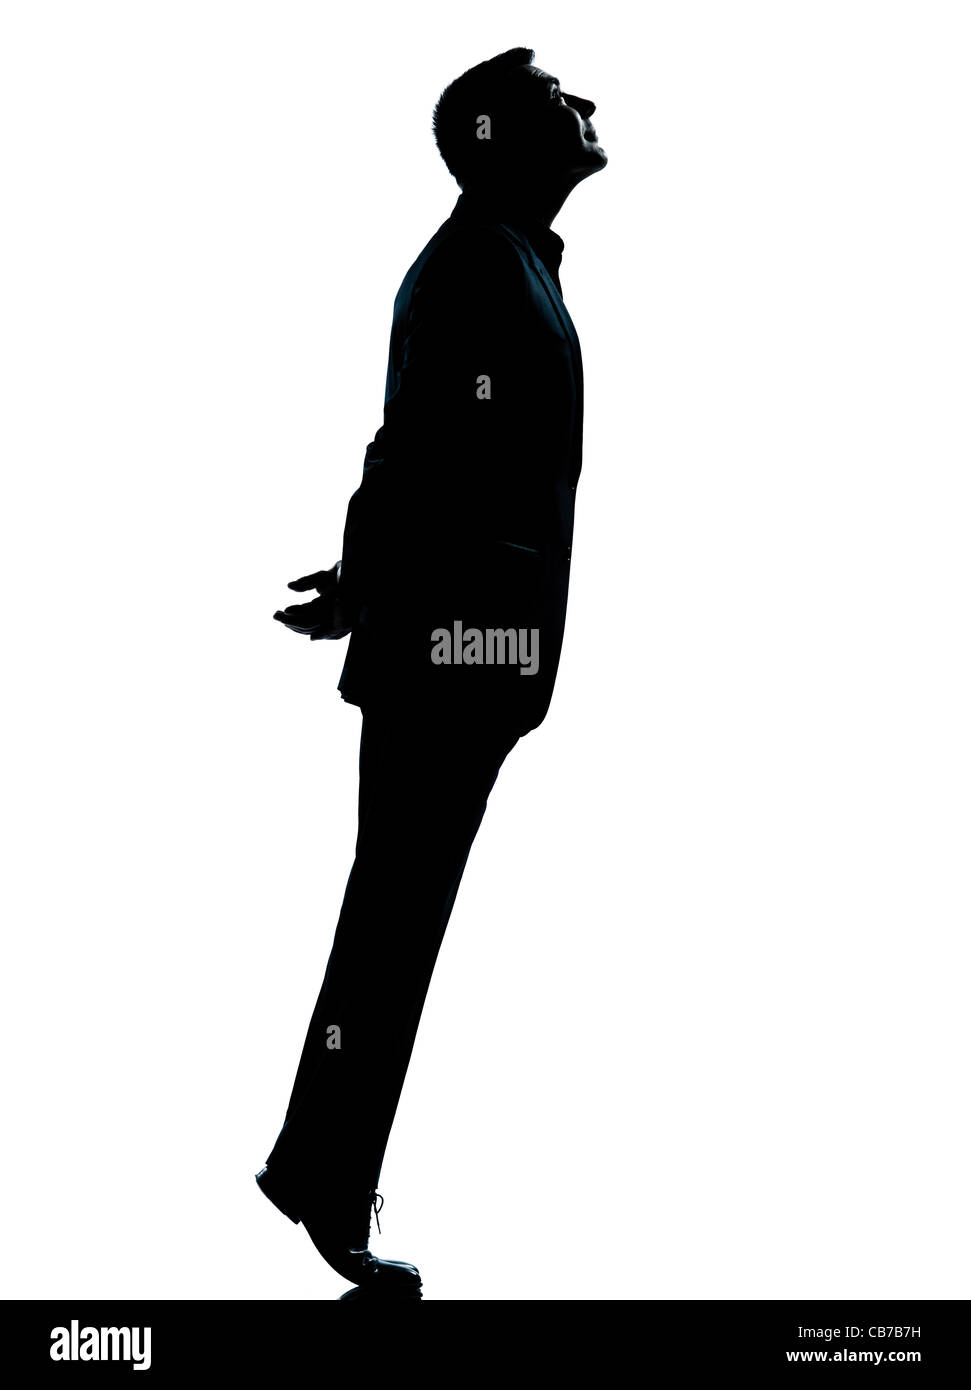 one  business man silhouette standing tiptoe looking up Full length in studio isolated on white background - Stock Image